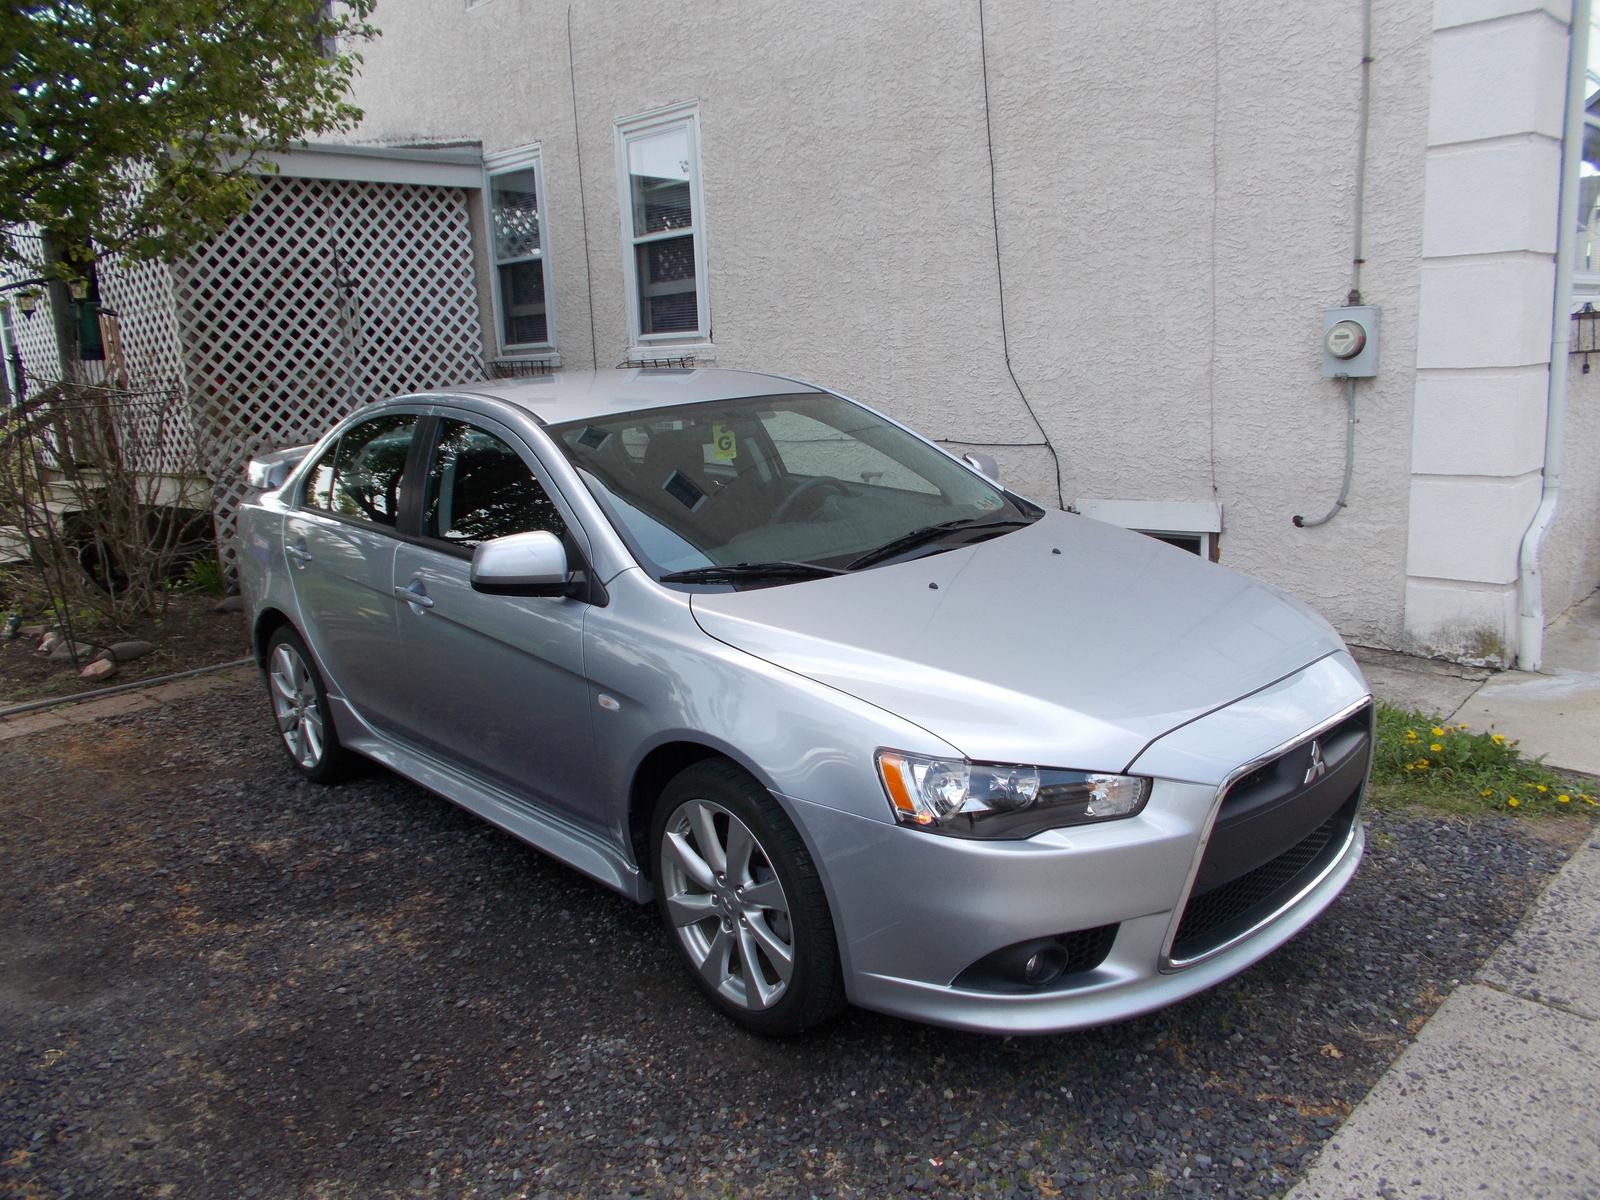 Picture of 2014 Mitsubishi Lancer GT